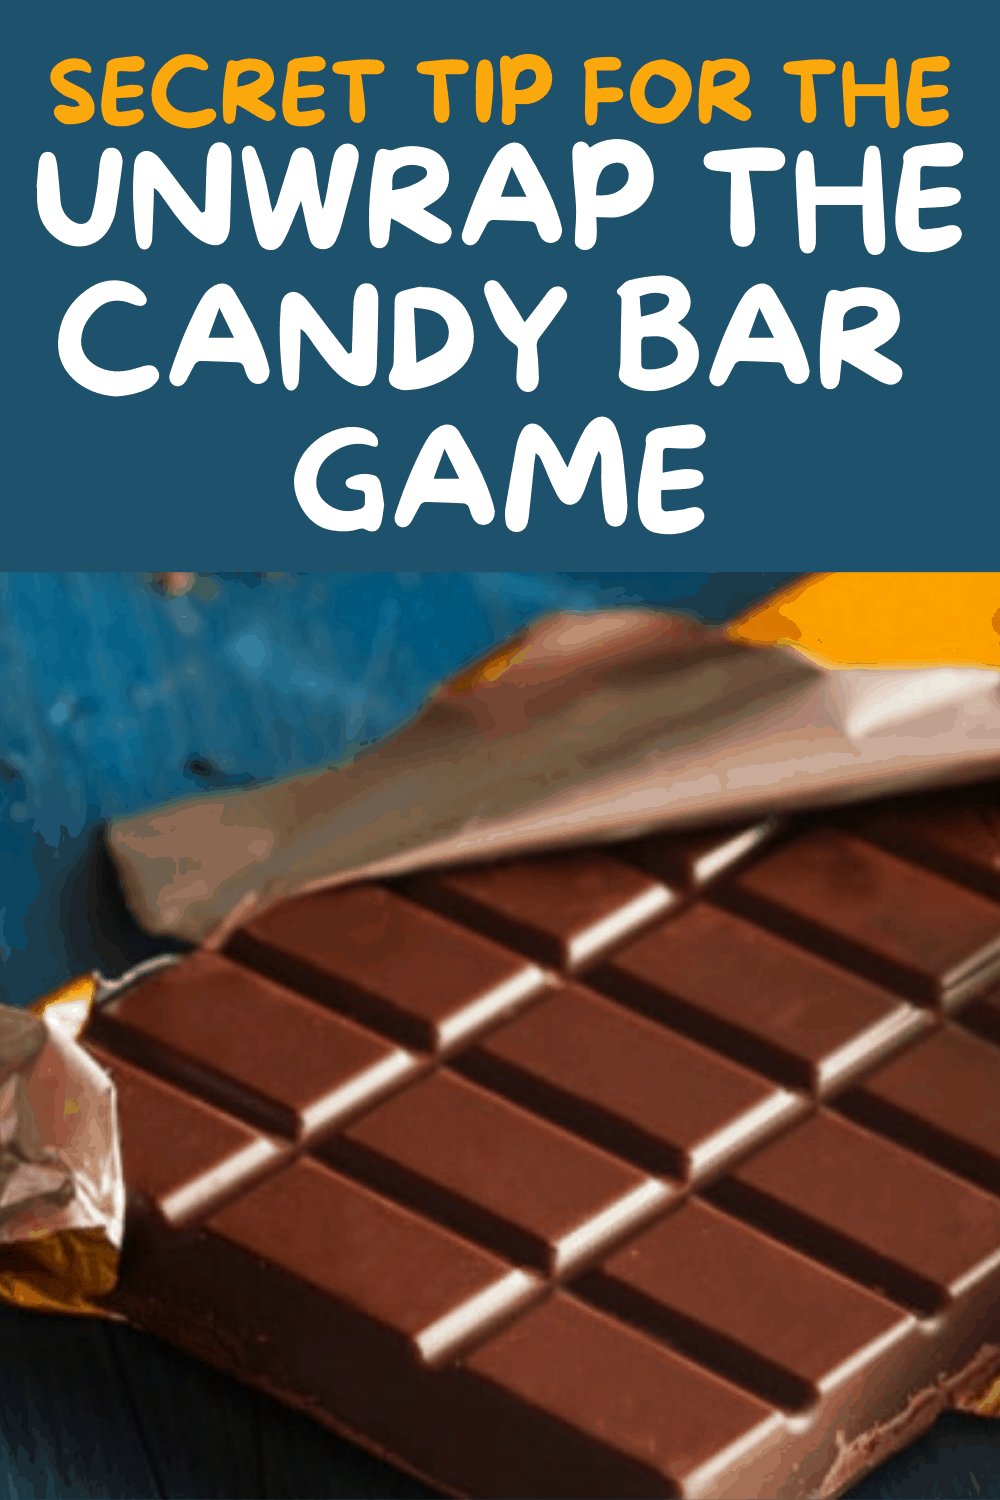 CANDY BAR GAME WITH DICE